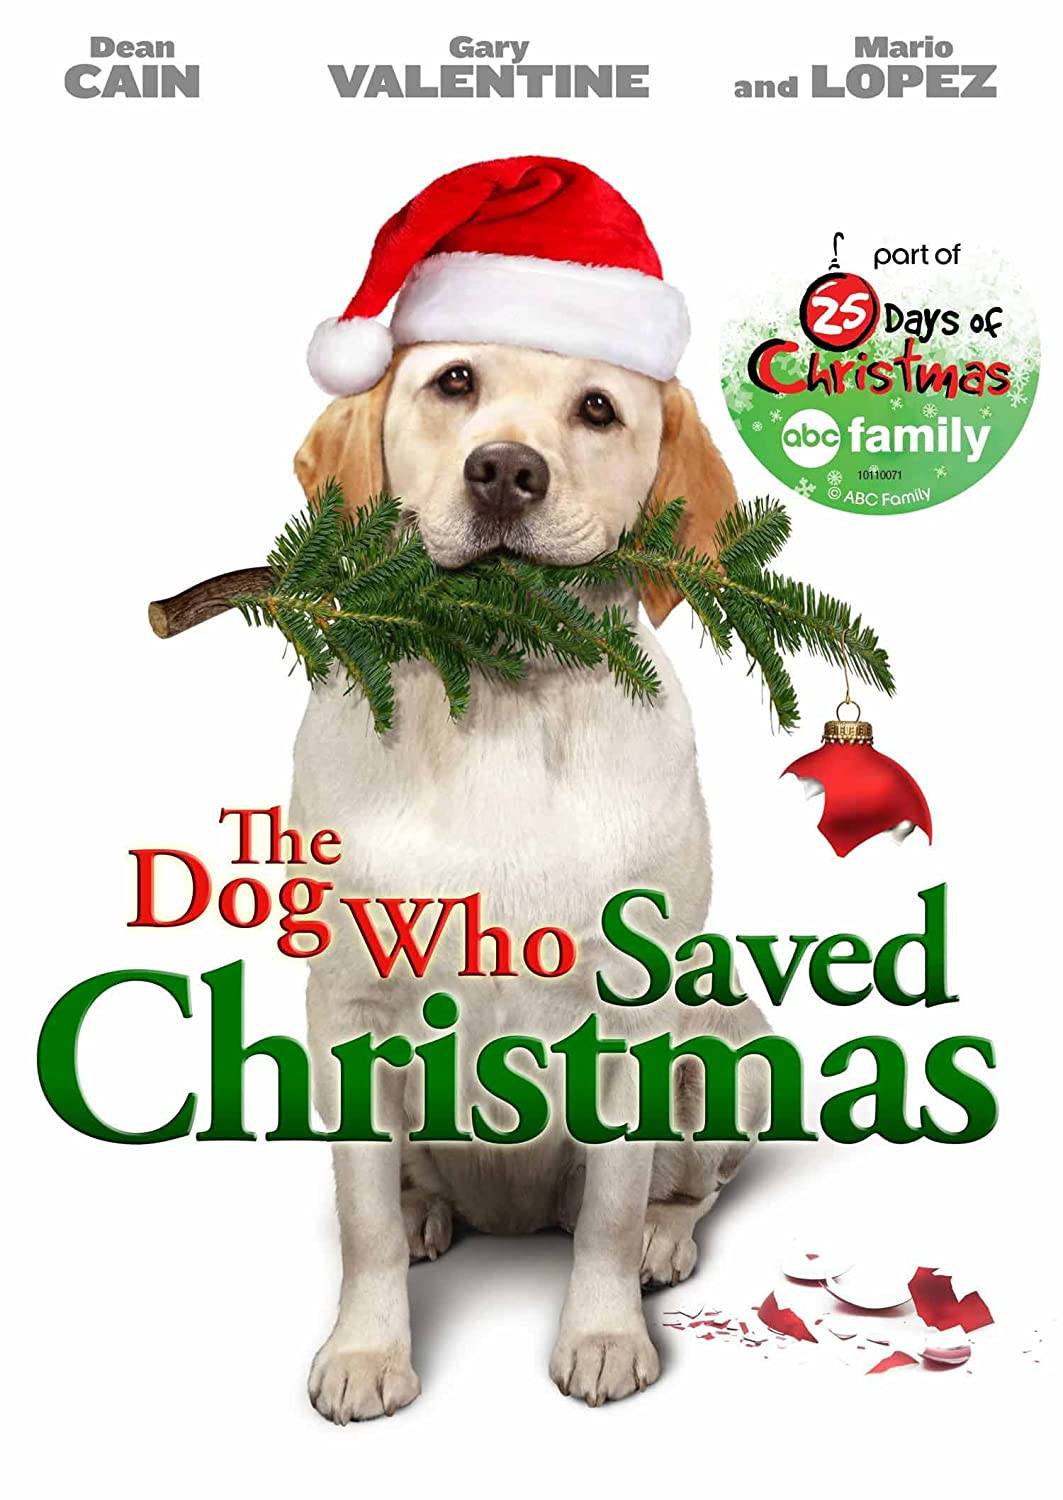 Amazon.com: Dog Who Saved Christmas: Dean Cain, Mario Lopez, Gary ...